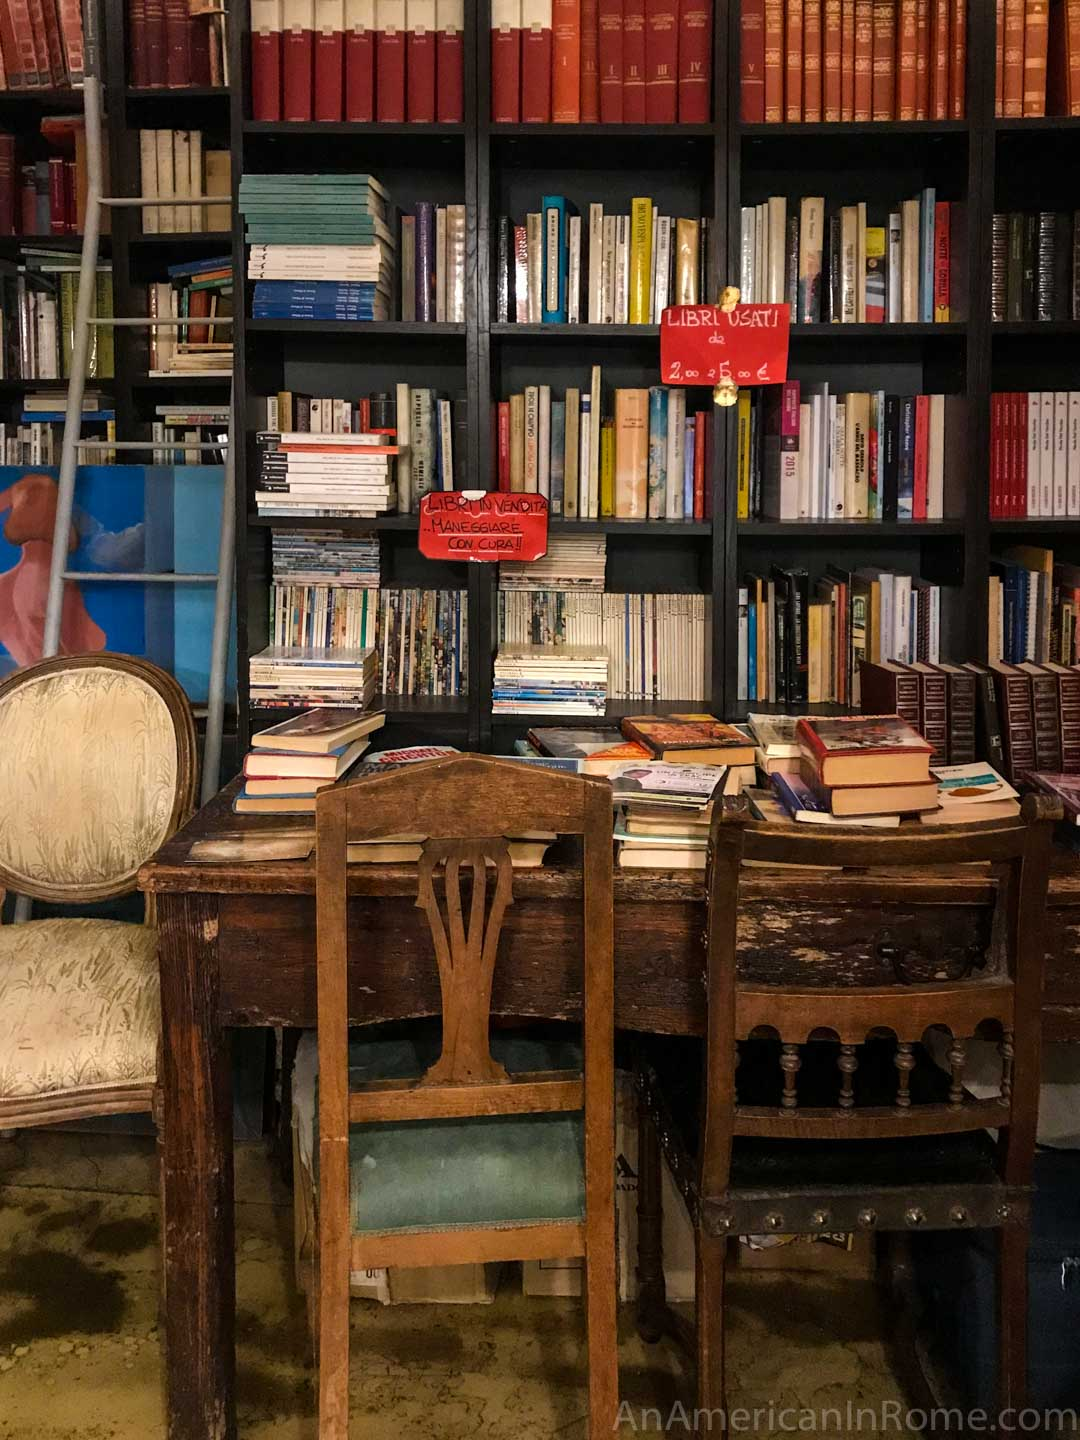 used books on a shelf with antique chairs